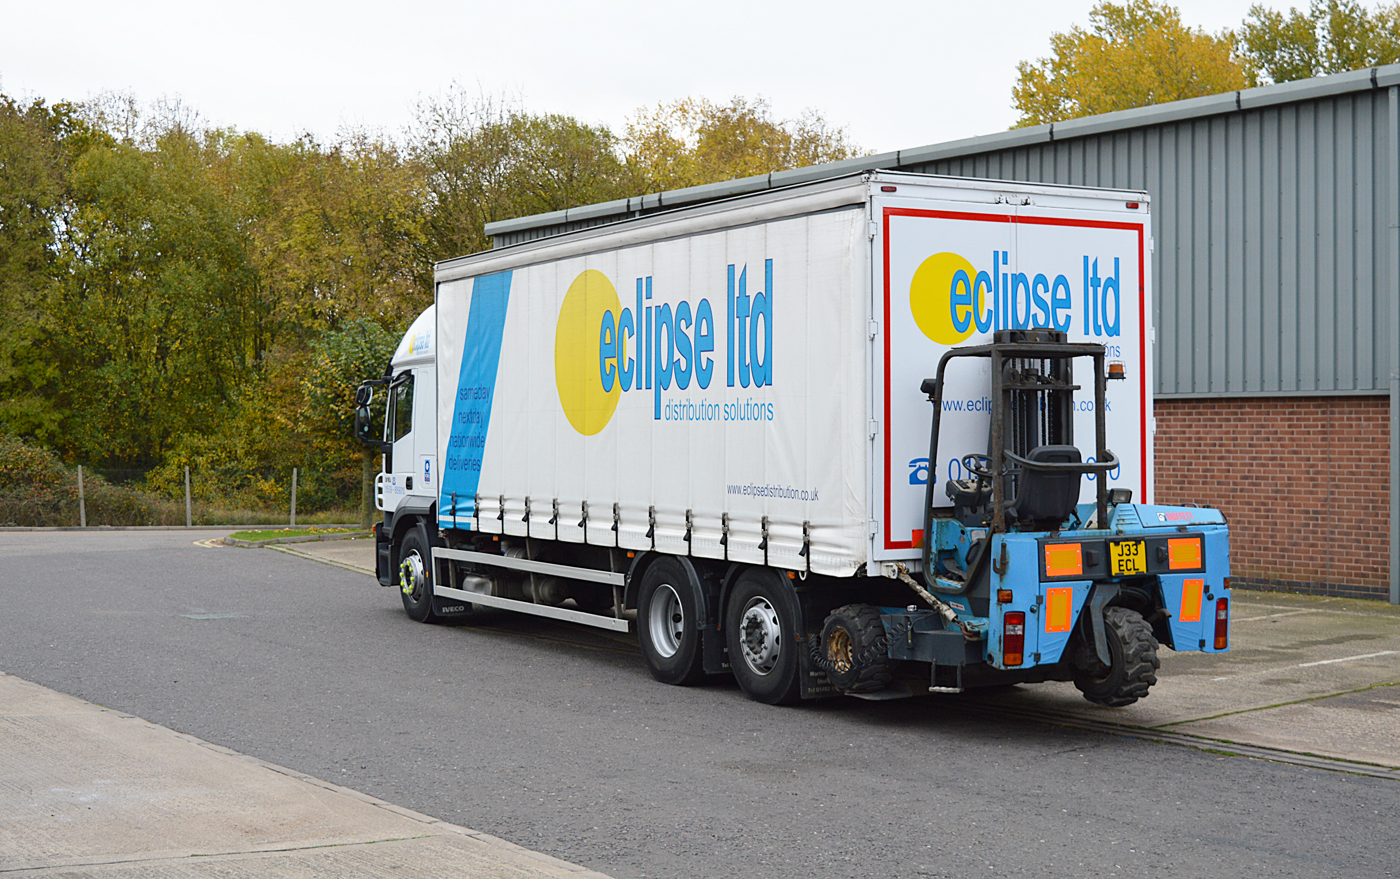 An image showing a haulage lorry used by Eclipse Distribution Solutions Ltd.